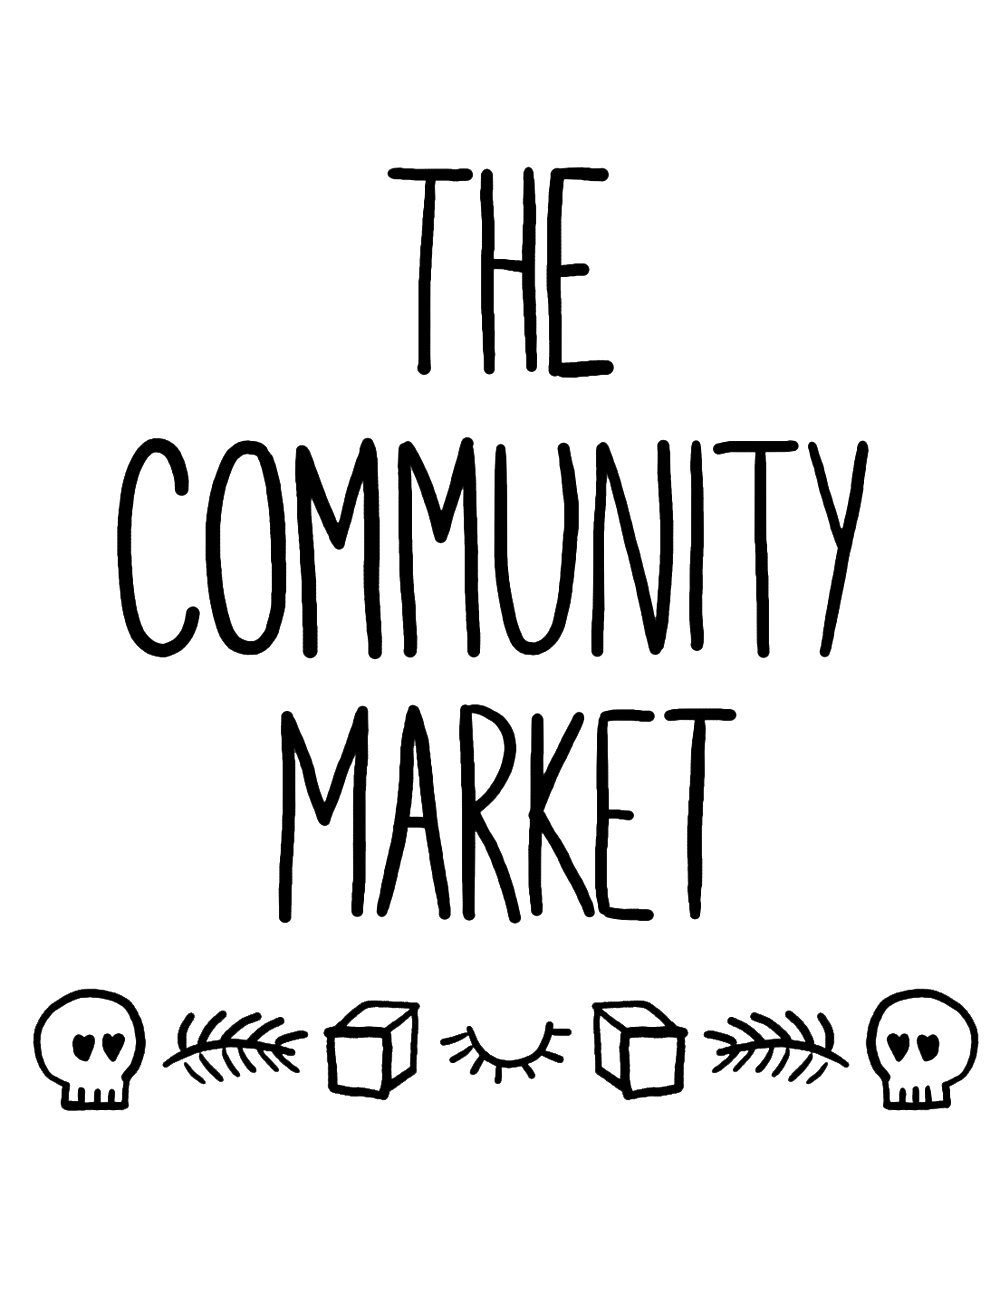 The Community Market